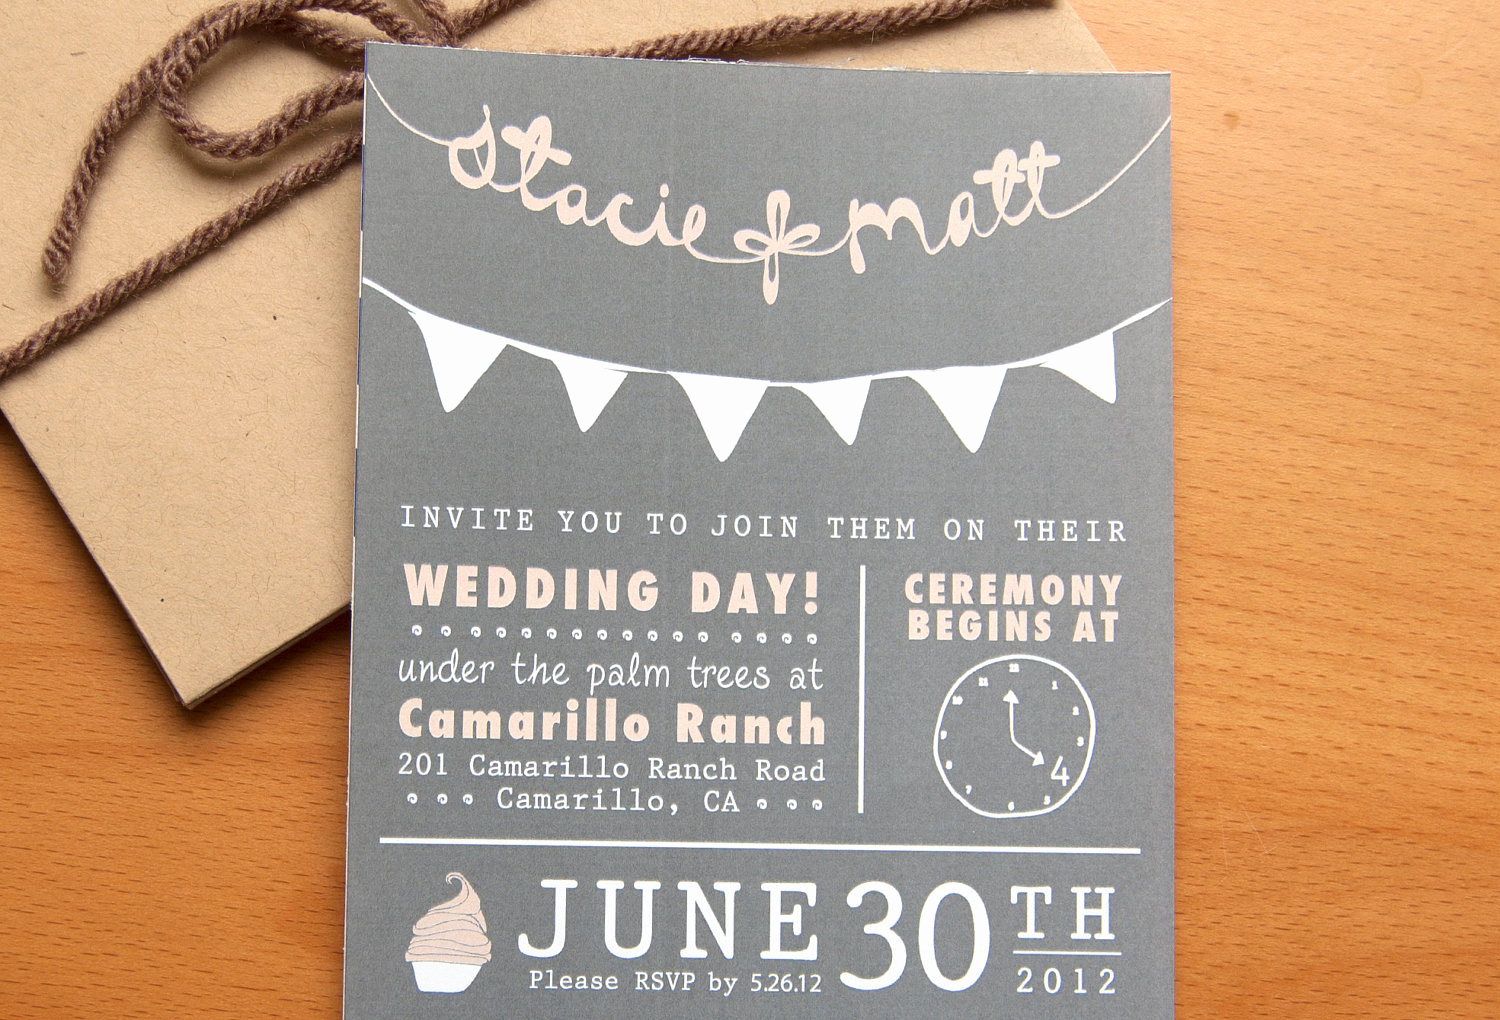 Diy Wedding Invitation Ideas Inspirational Bud Wedding Ideas Diy Invitations Etsy Weddings